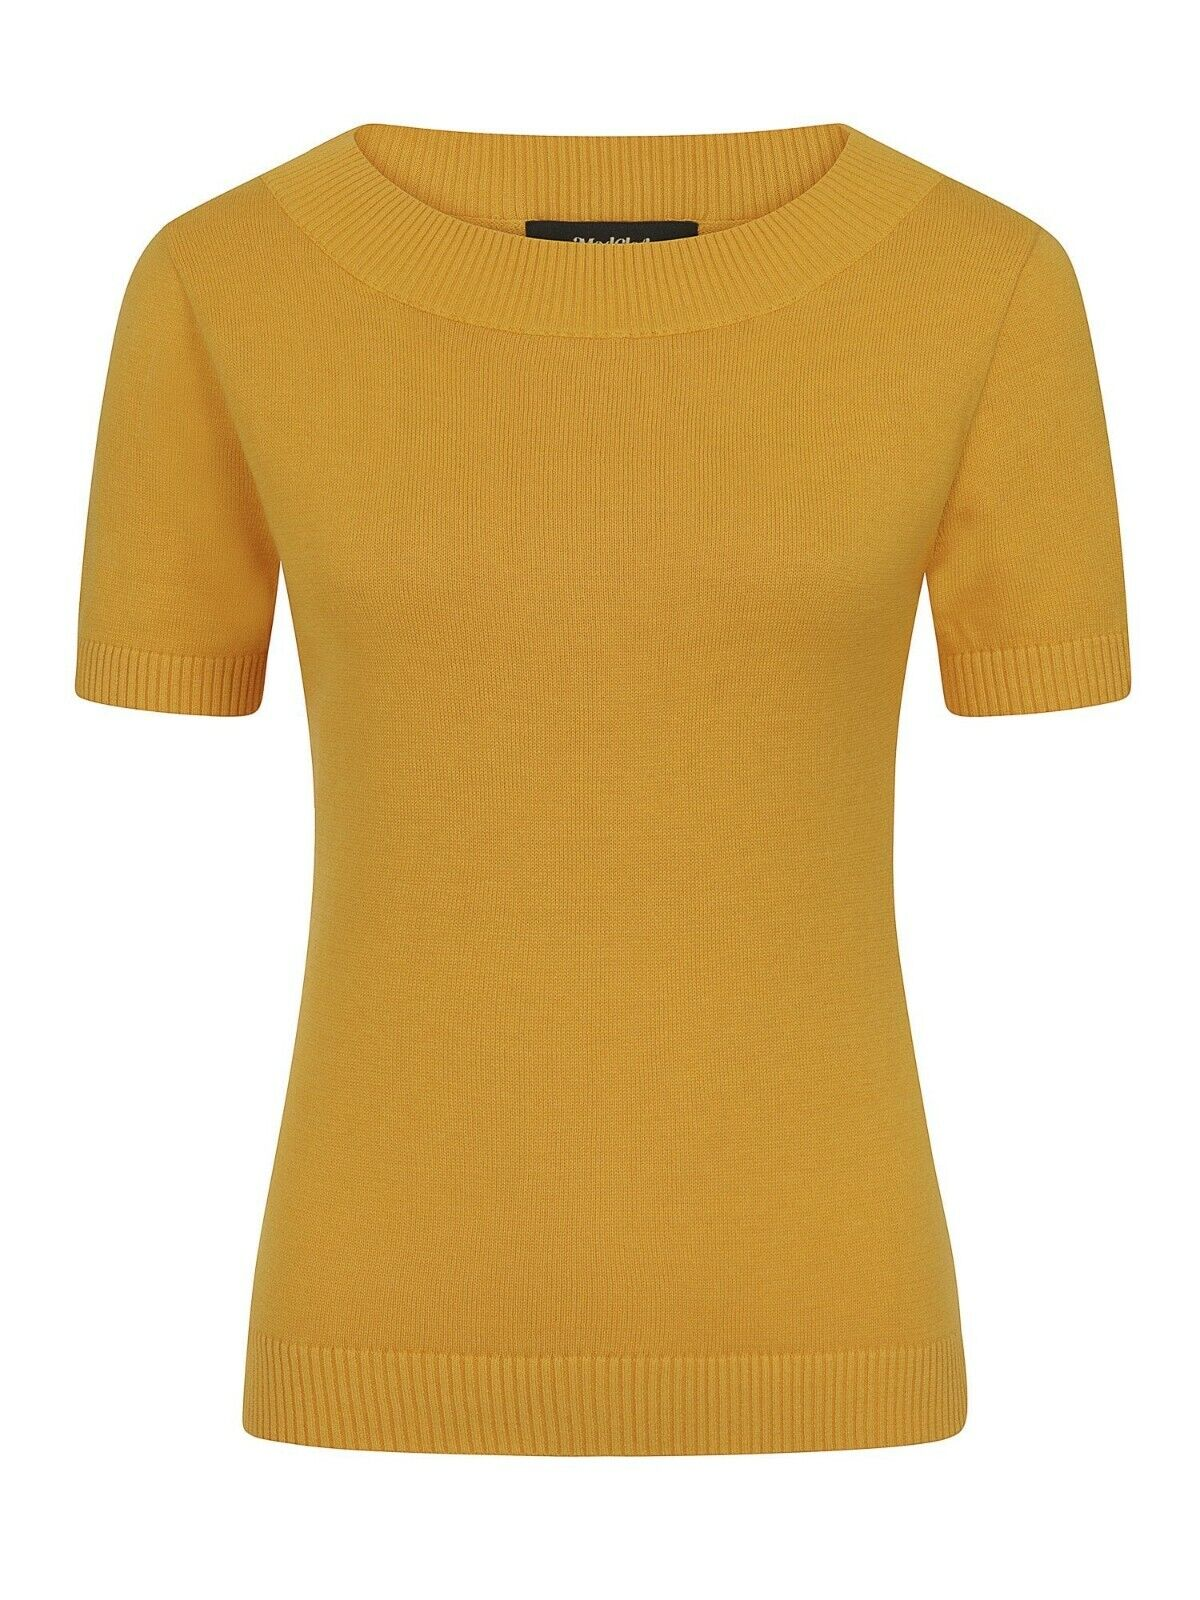 Collectif x Modcloth Camnila Knitted Top Size 30 Yellow